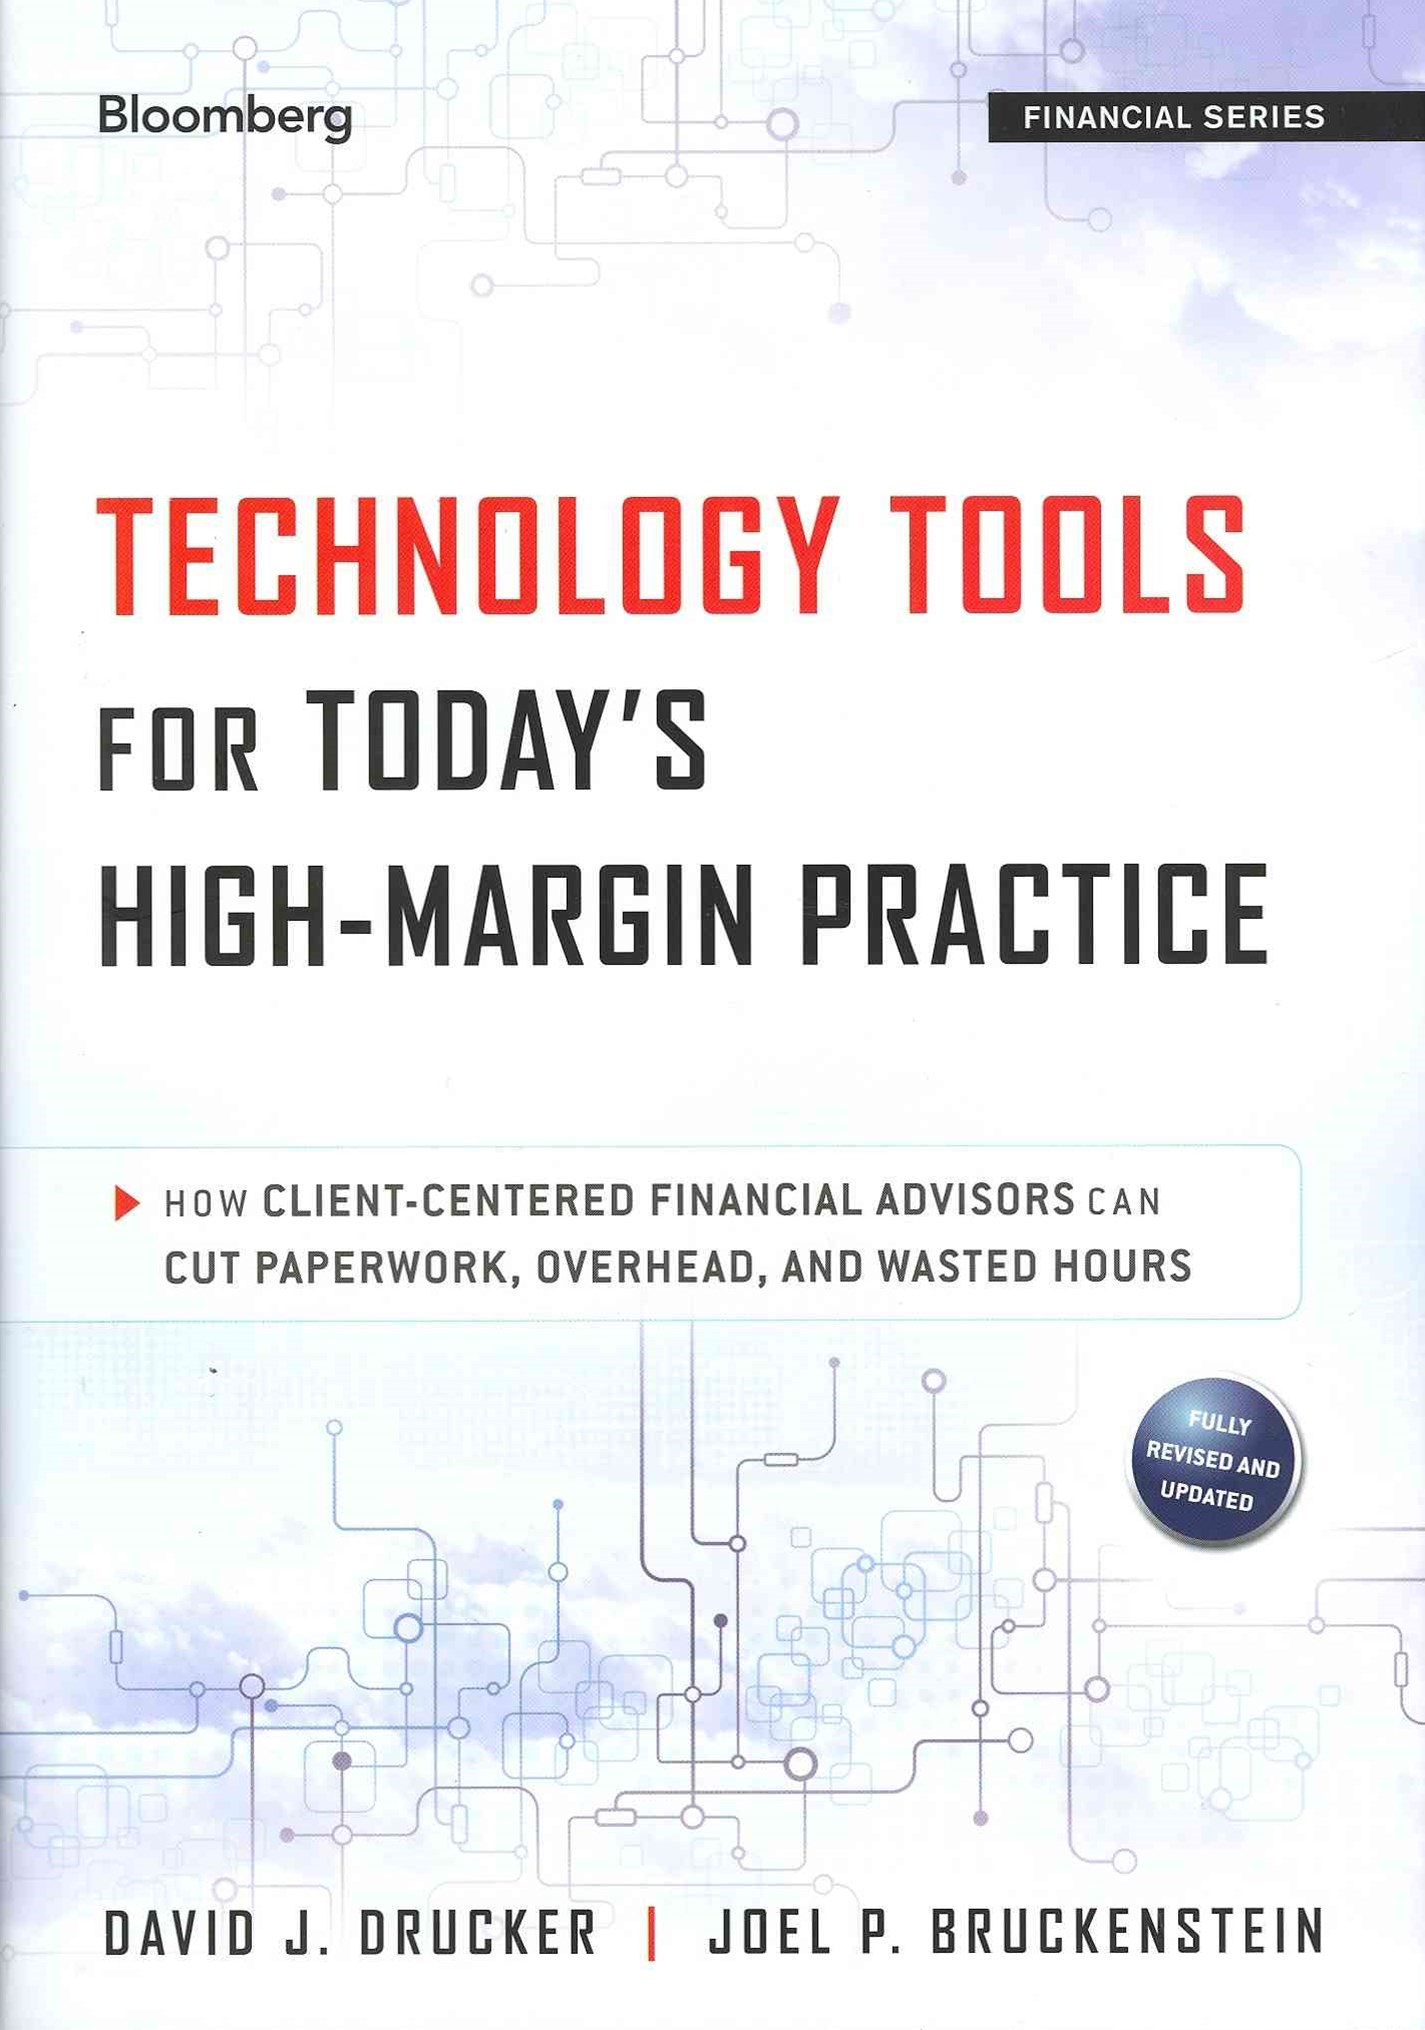 Technology Tools for Today's High-Margin Practice